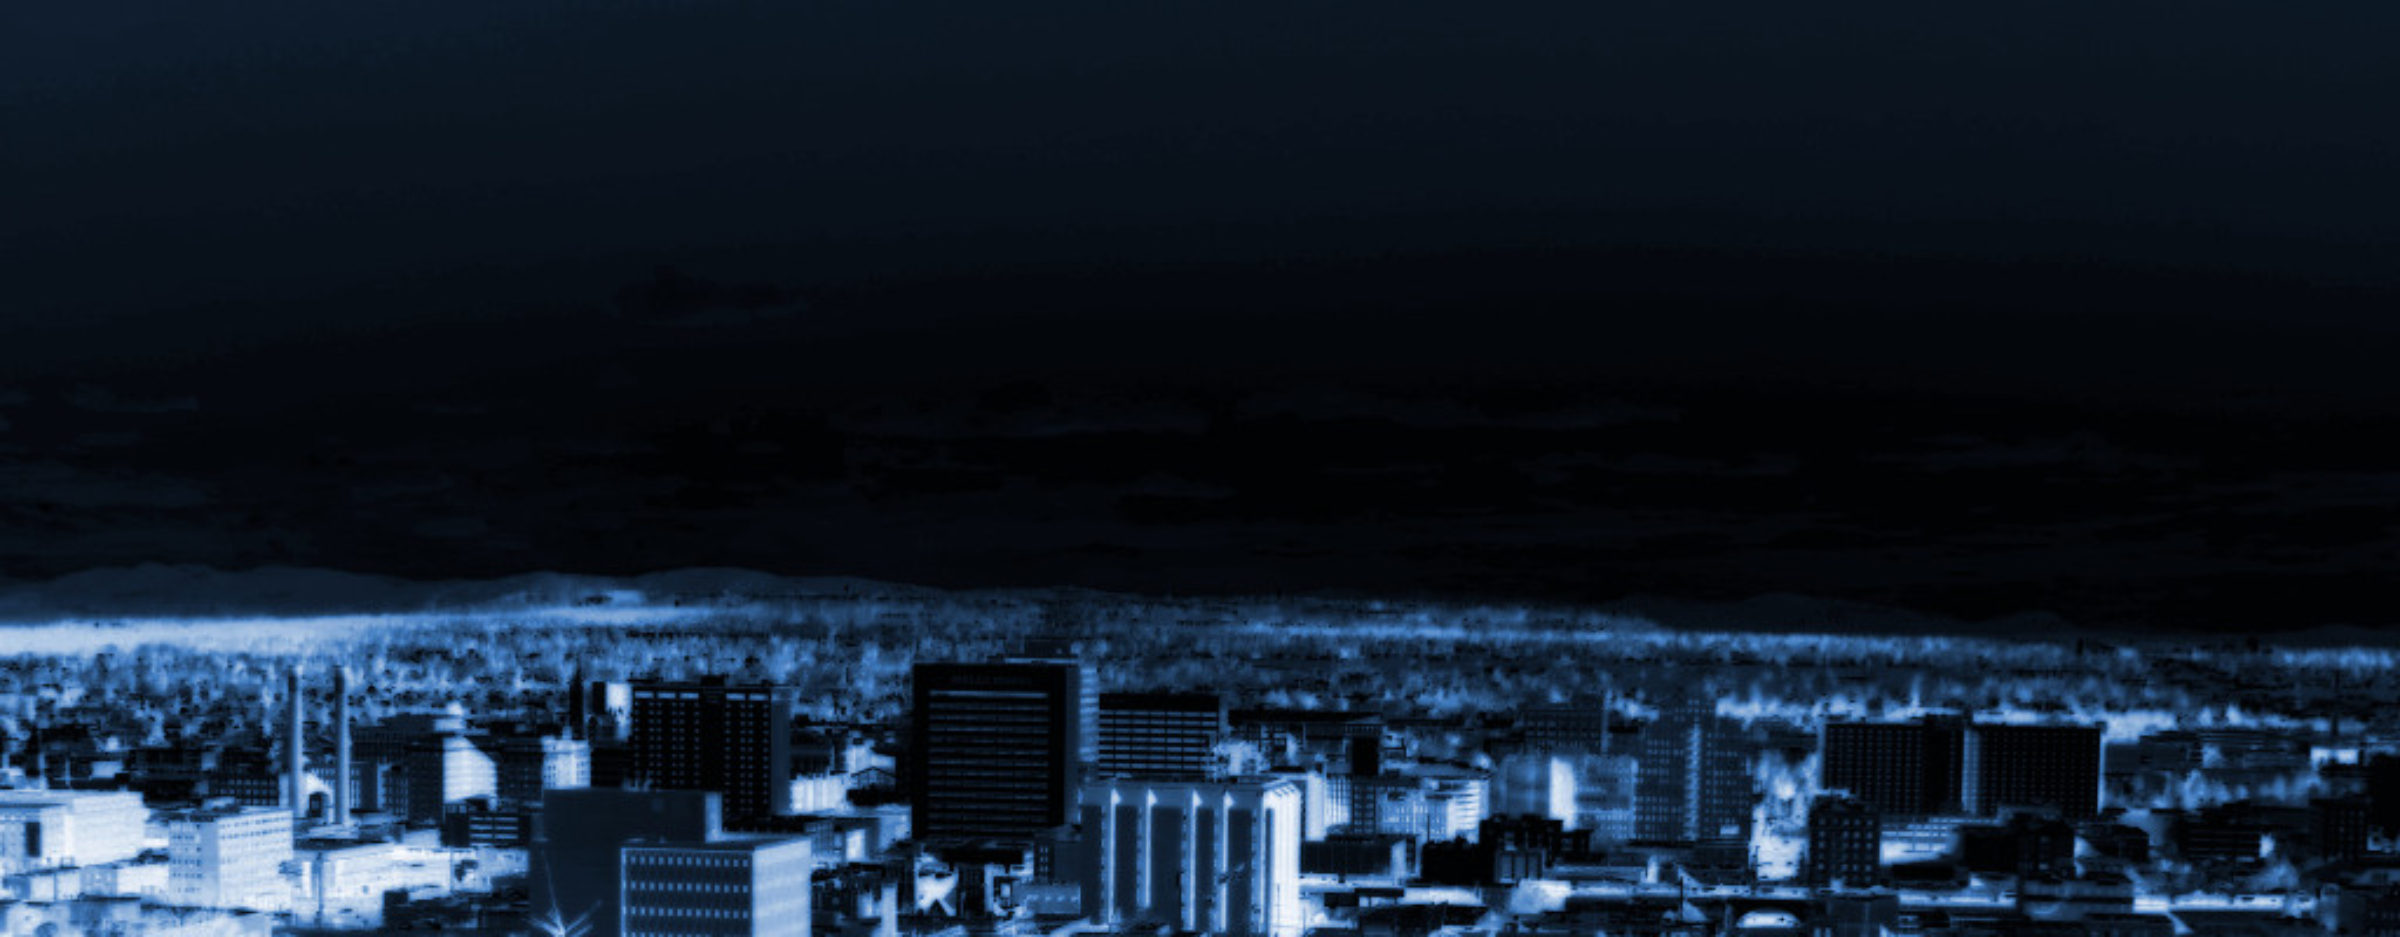 cropped-cityscapeblue2-2.jpg